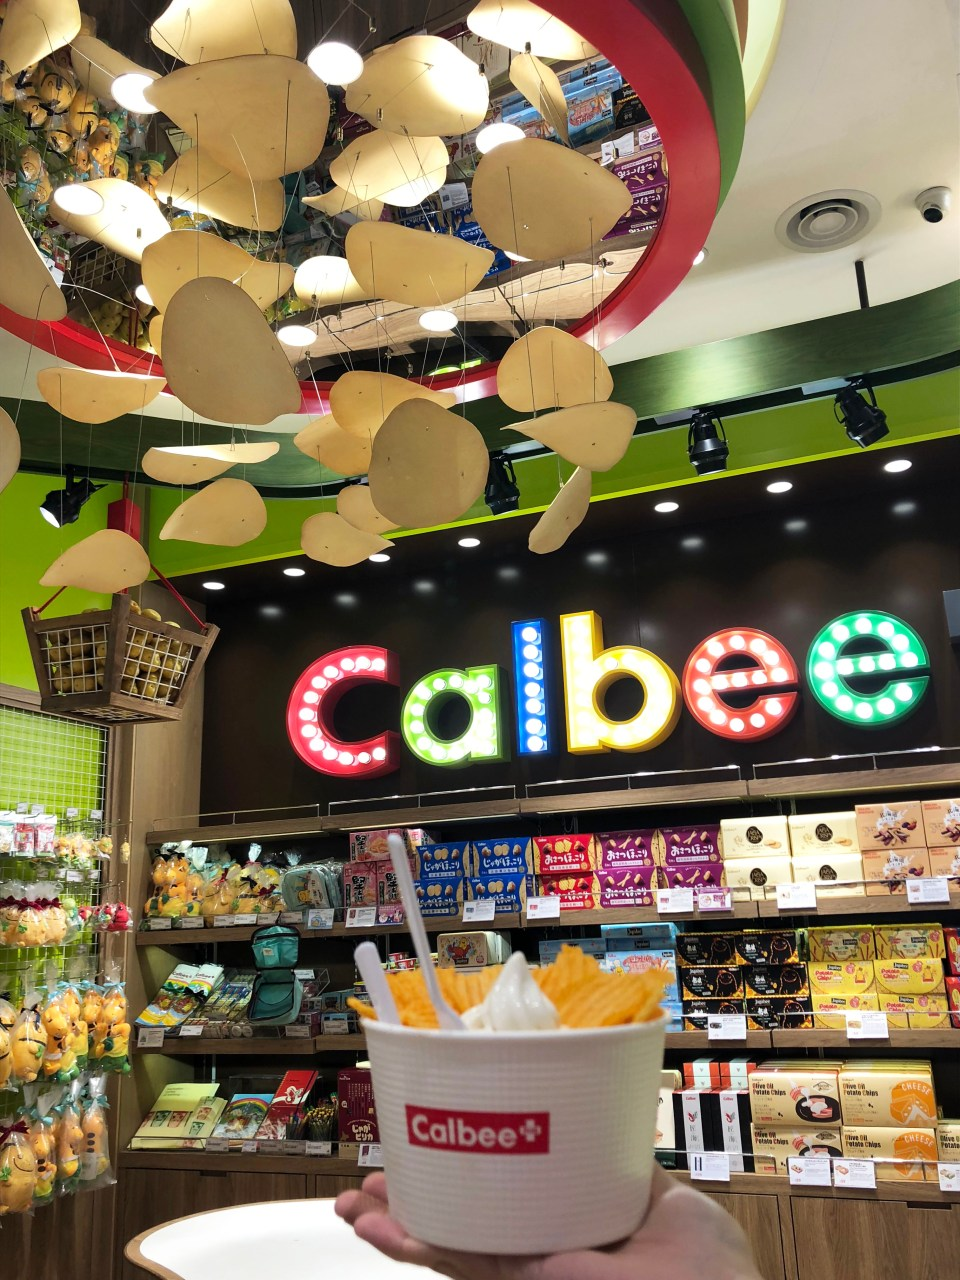 Calbee - Typhoon chips + Ice Cream